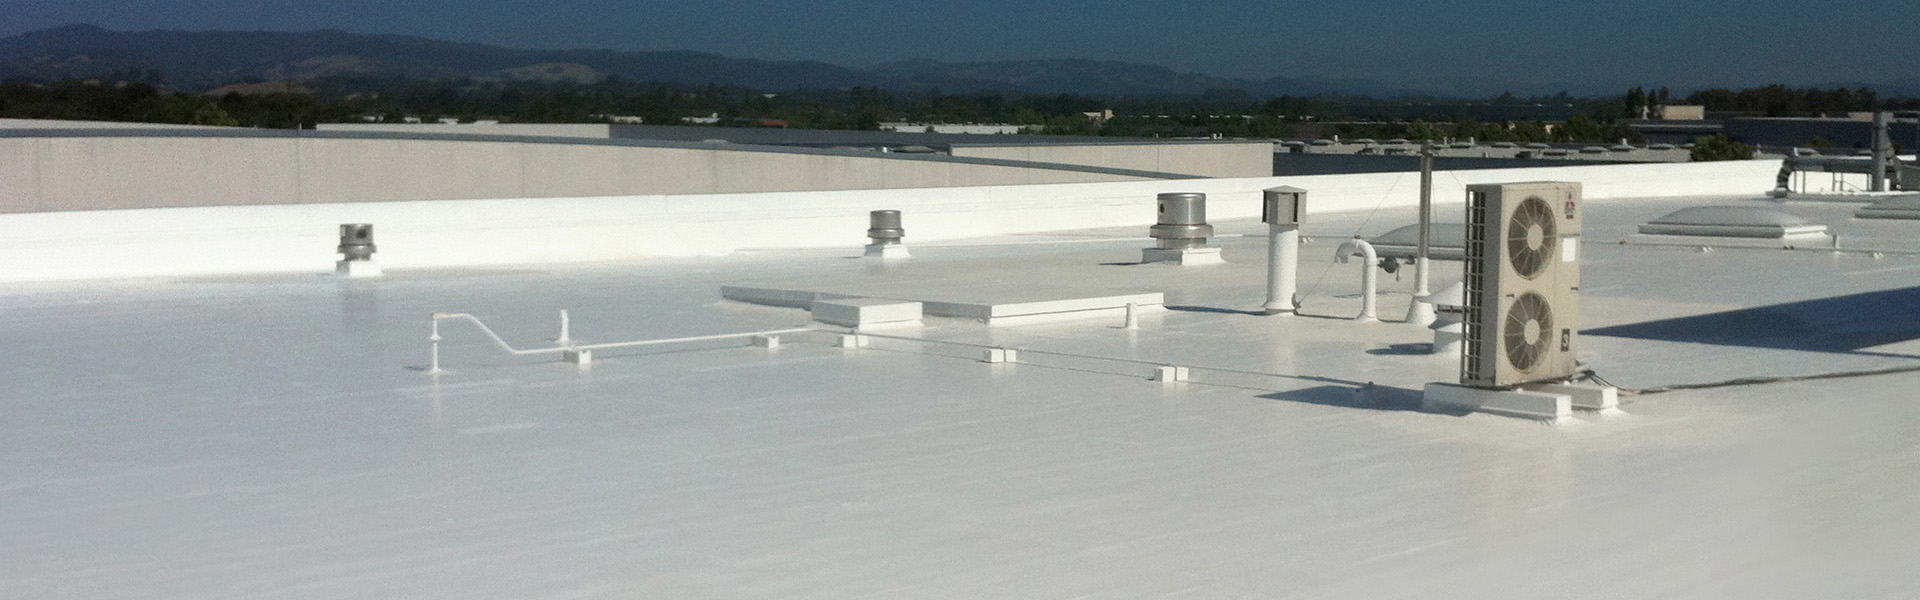 SAVE UP TO 30% ON YOUR MONTHLY ENERGY BILL AND EXTEND THE LIFE OF YOUR ROOF WITH A COOL ROOF COATING BY JAKES ROOFING